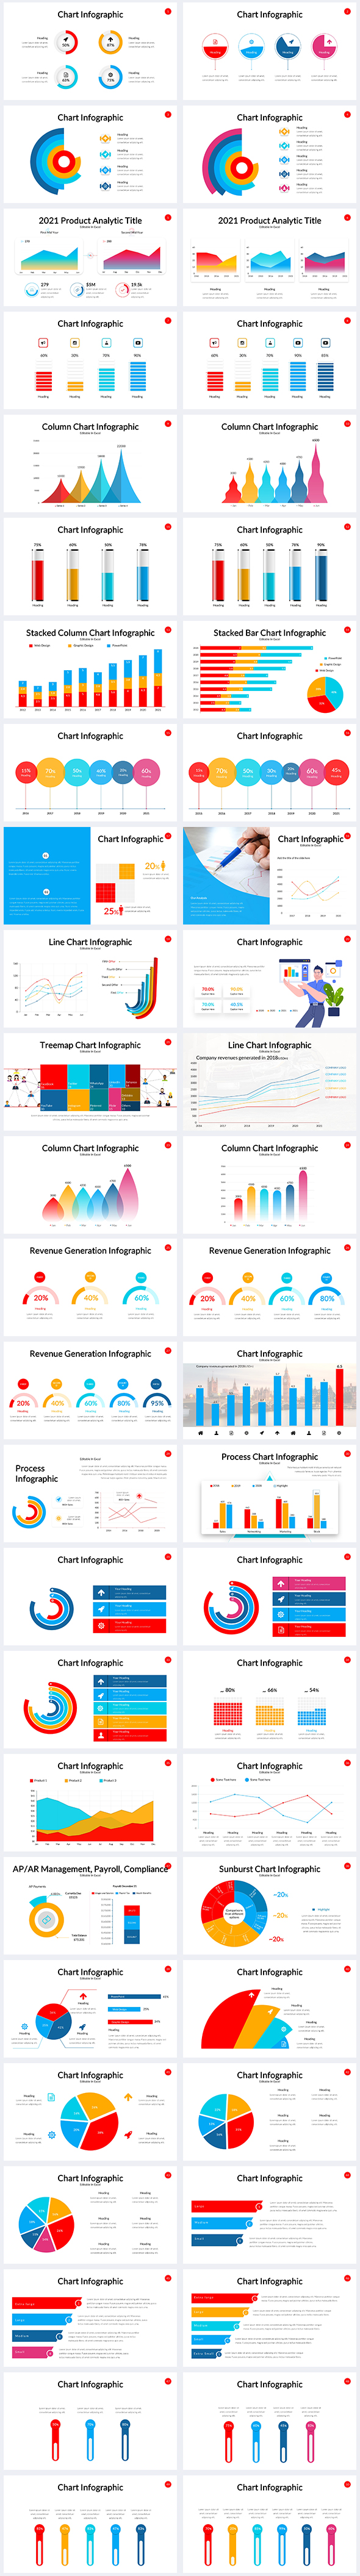 Data-Charts-Power-Point-Infographic-Template